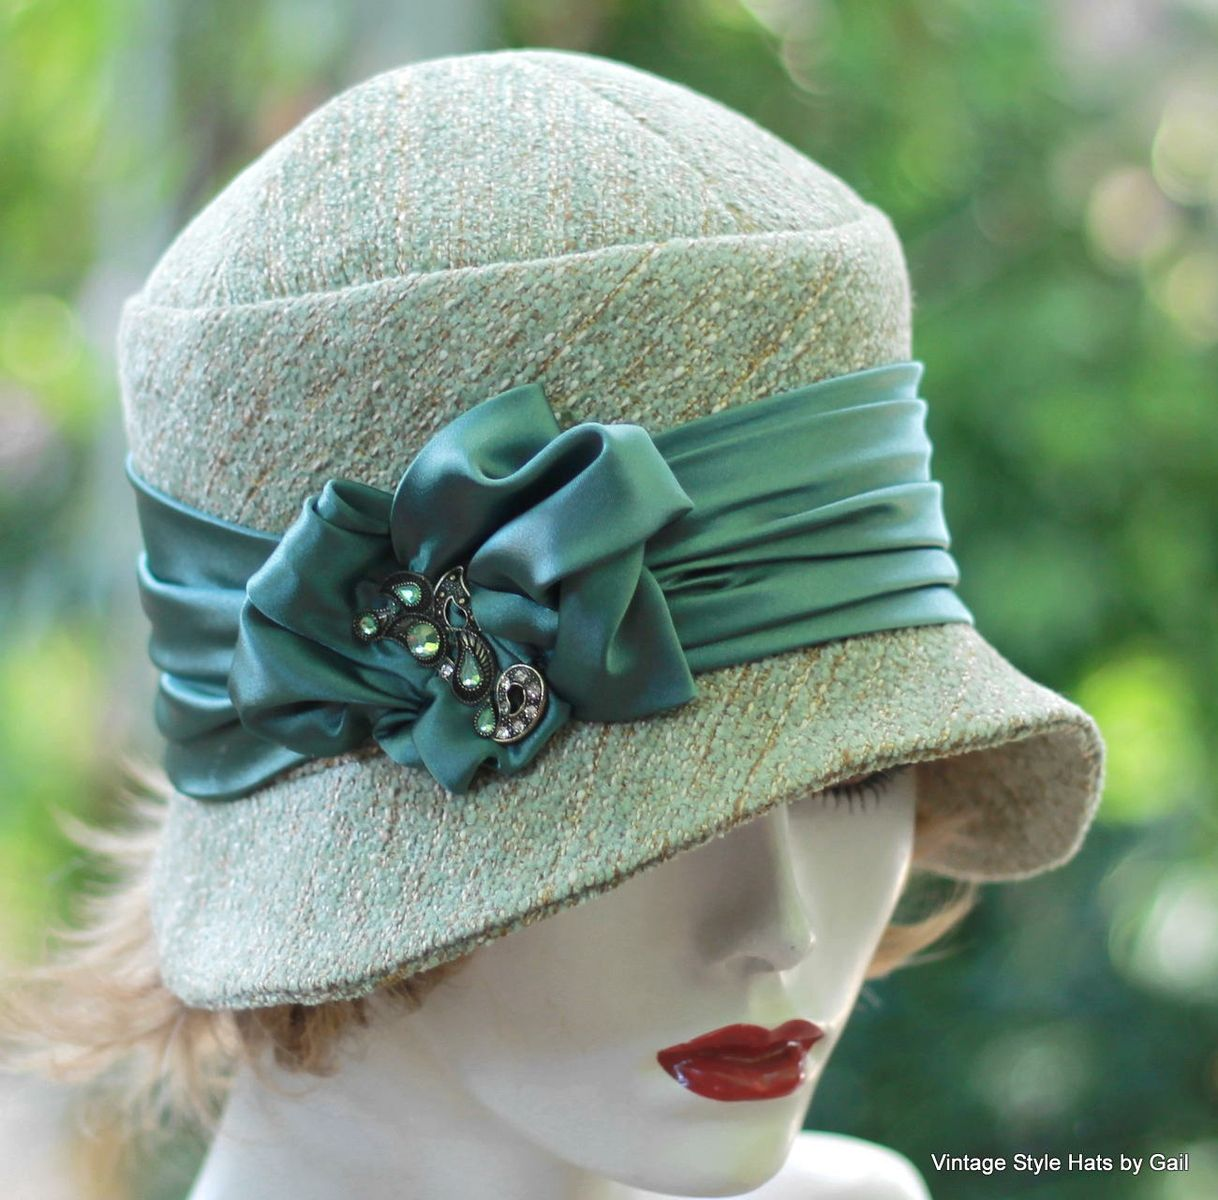 ff8074016b78ae Custom Made Women's Couture Downton Abbey Cloche Hat In Teal Moss Green  Tweed